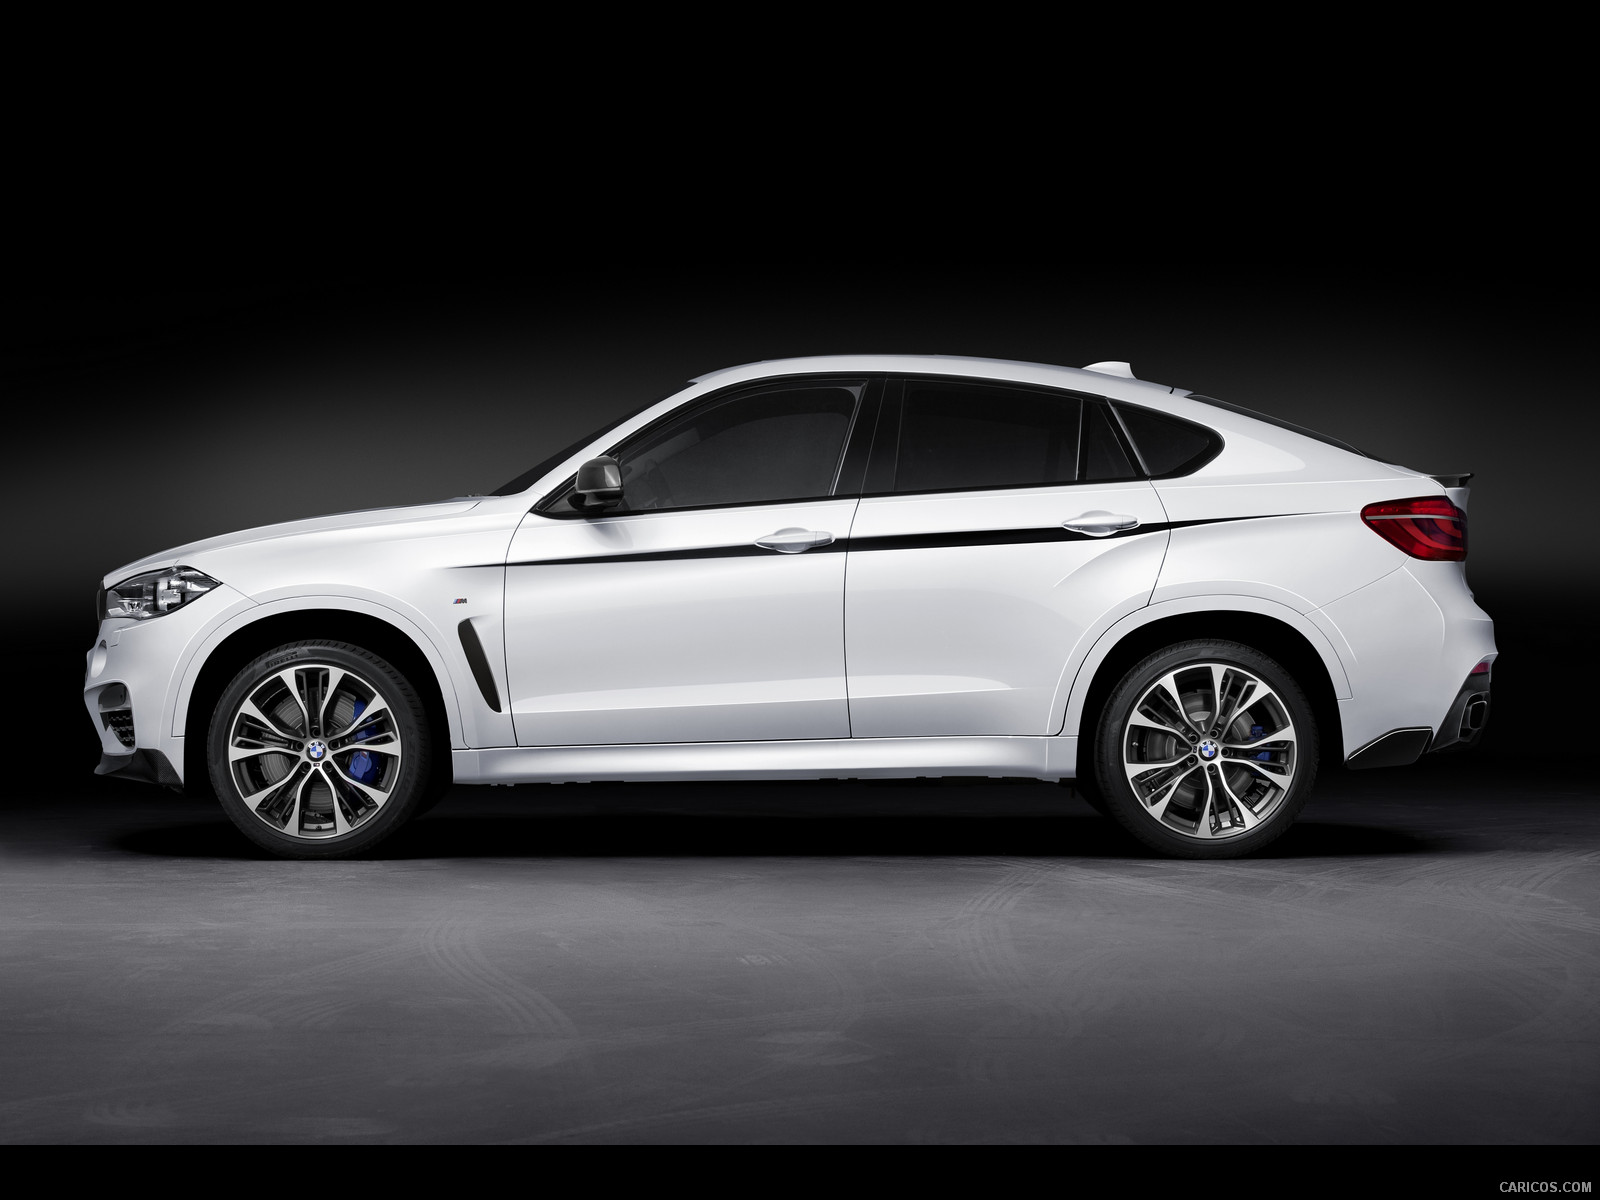 Comparison Bmw X6 M 2015 Vs Bmw X6 M Awd 2018 Suv